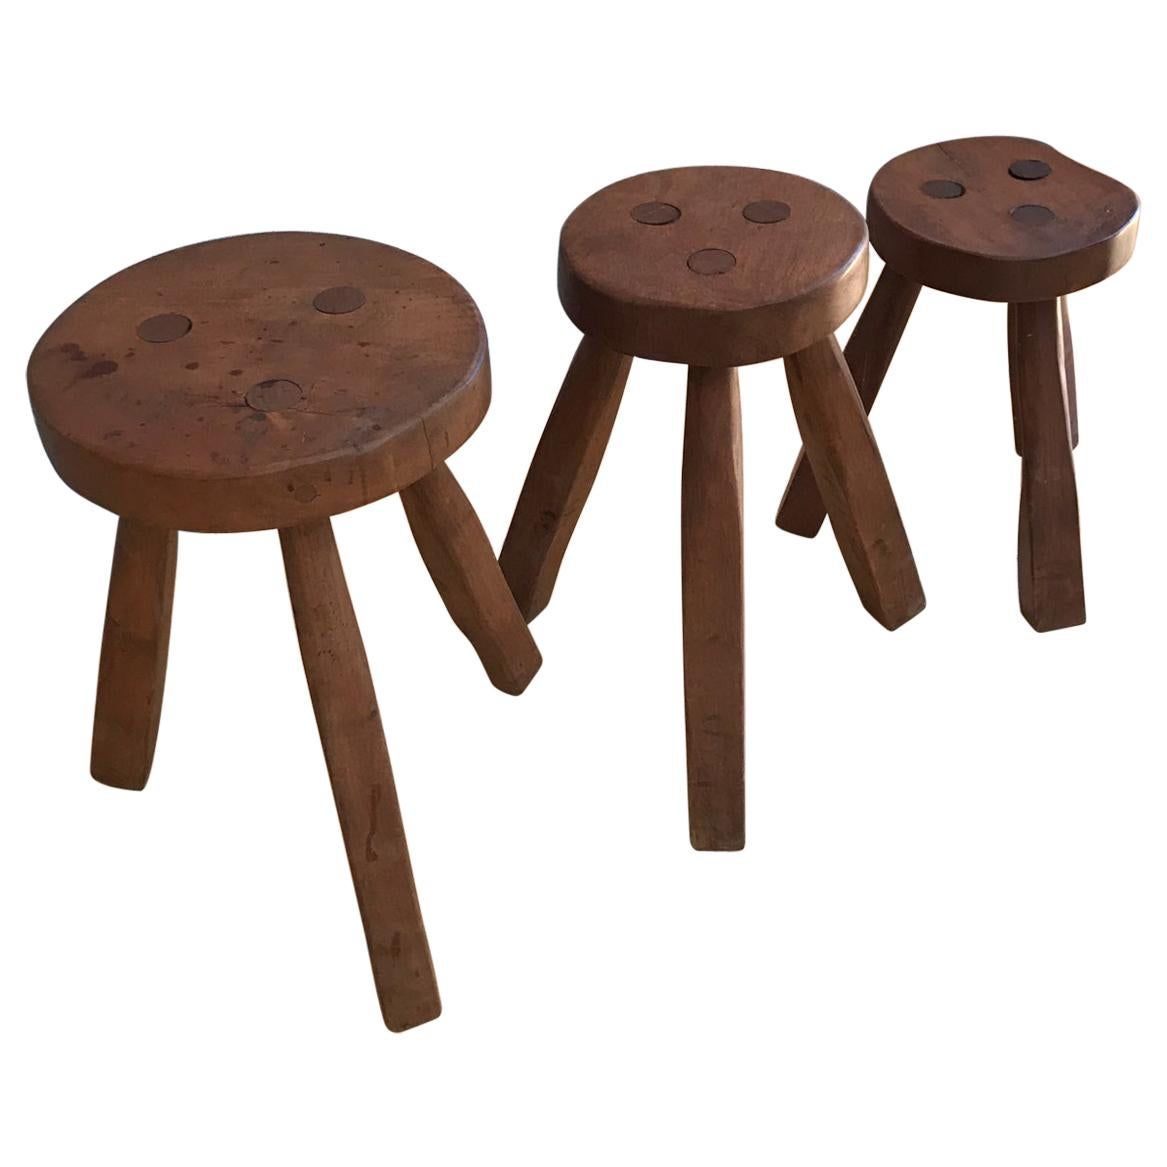 Style of Pierre Jeanneret Three Legged Round Stools Solid Wood, Set of 3